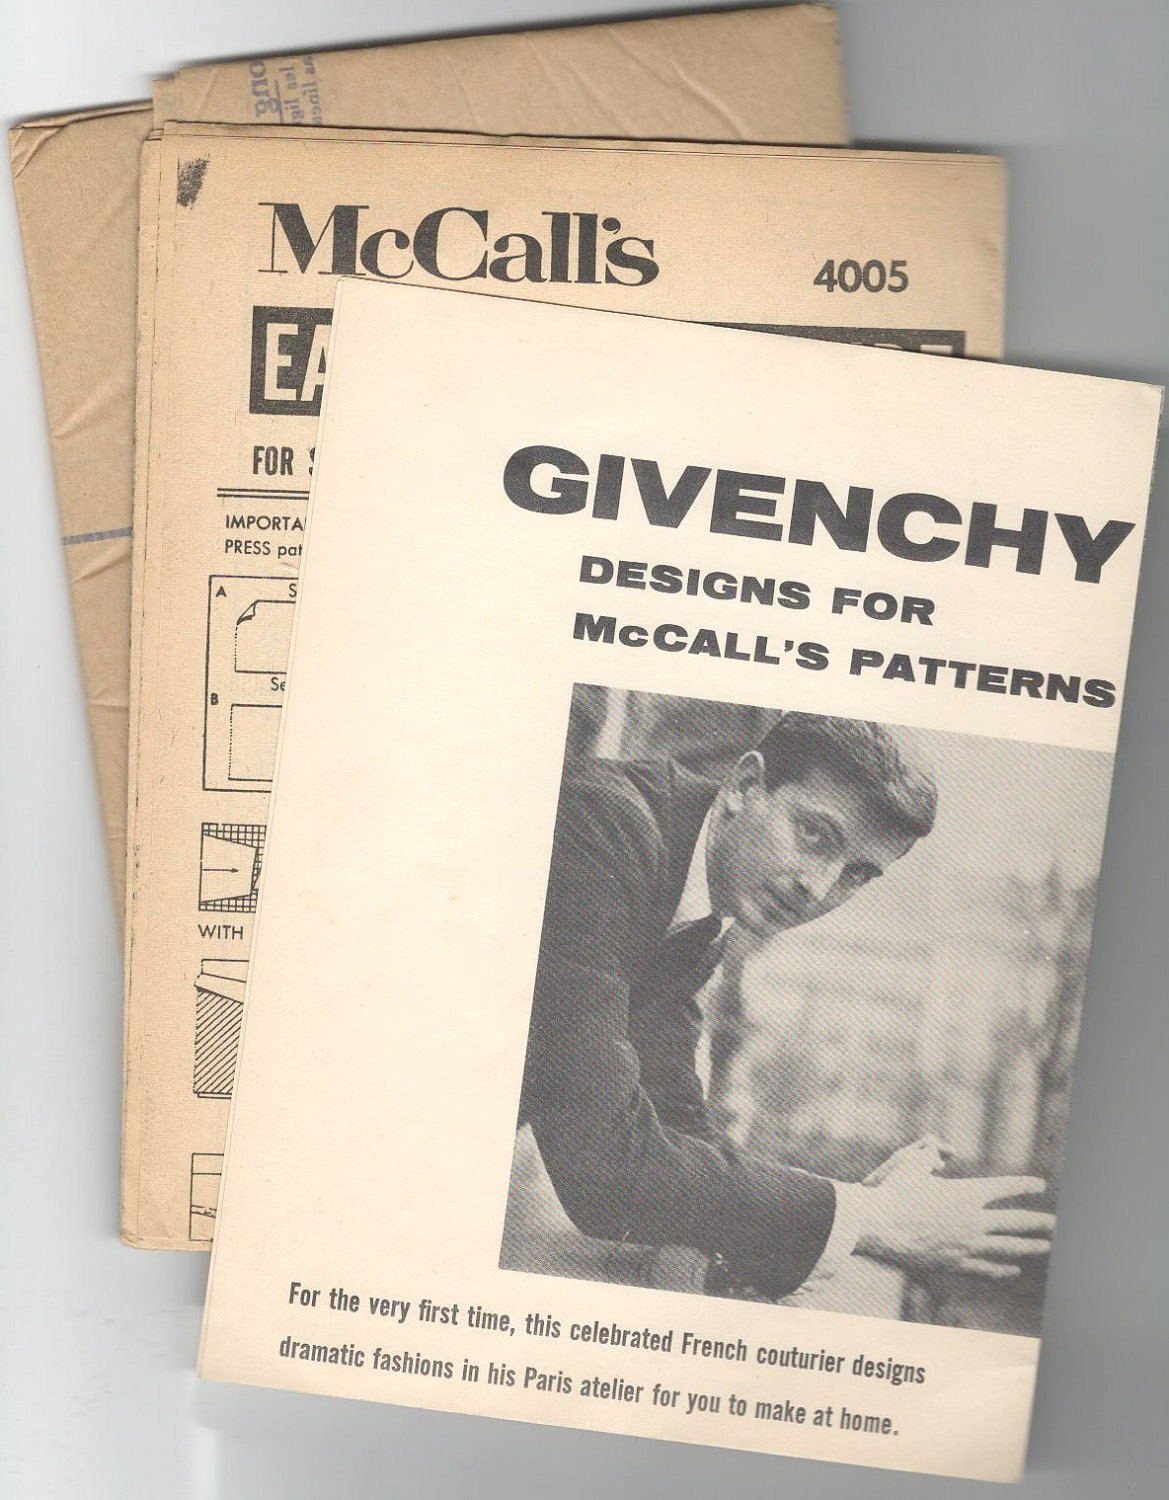 """Givenchy Designs for McCall's Patterns. For the very first time, this celebrated French couturier designs dramatic fashions in his Paris atelier for you to make at home."""